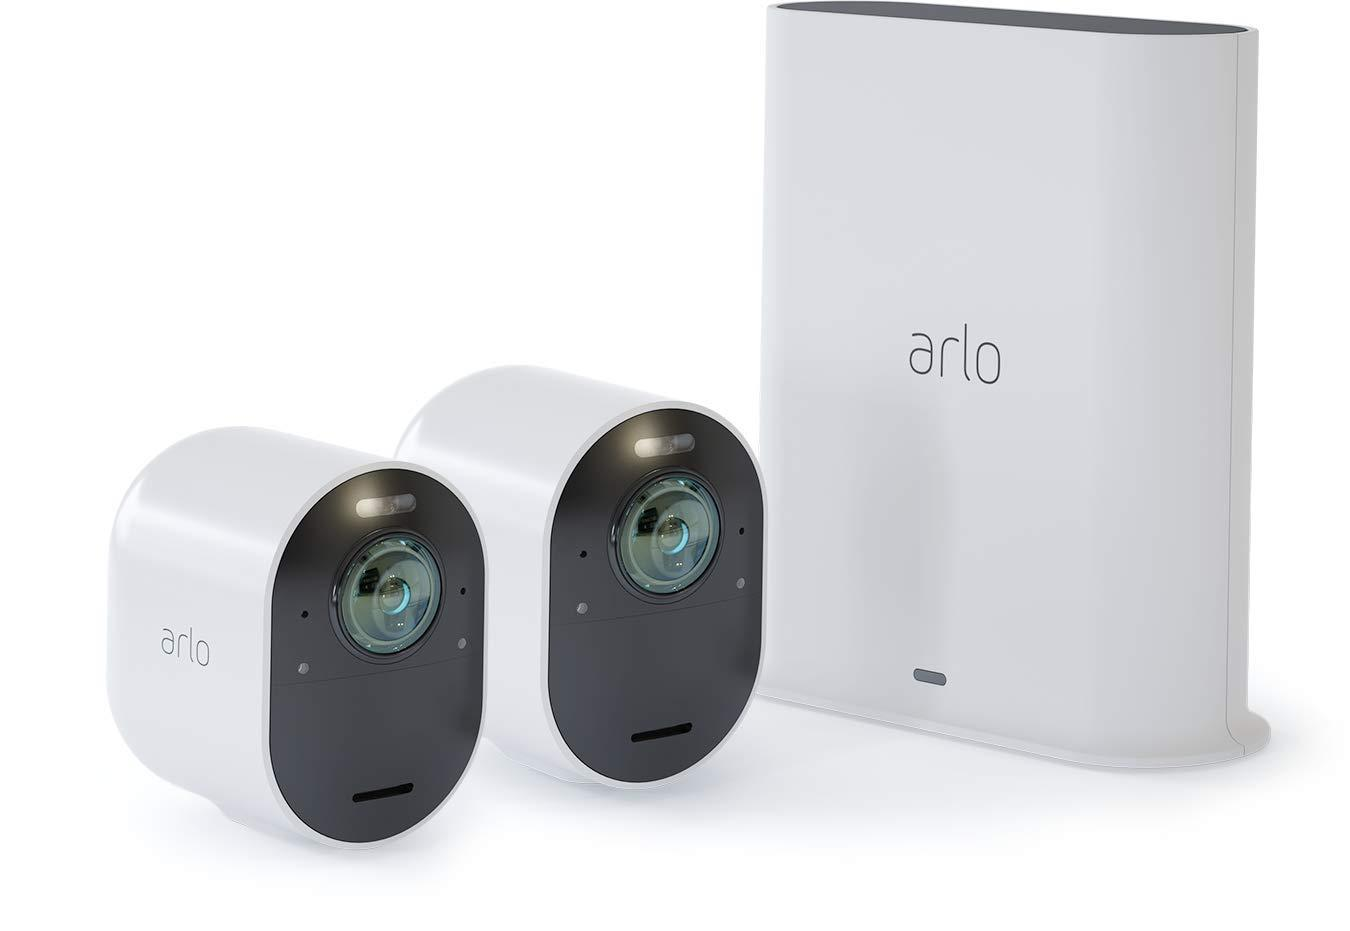 ARLO ULTRA 4K UHD WIRE-FREE SECURITY CAMERA SYSTEM